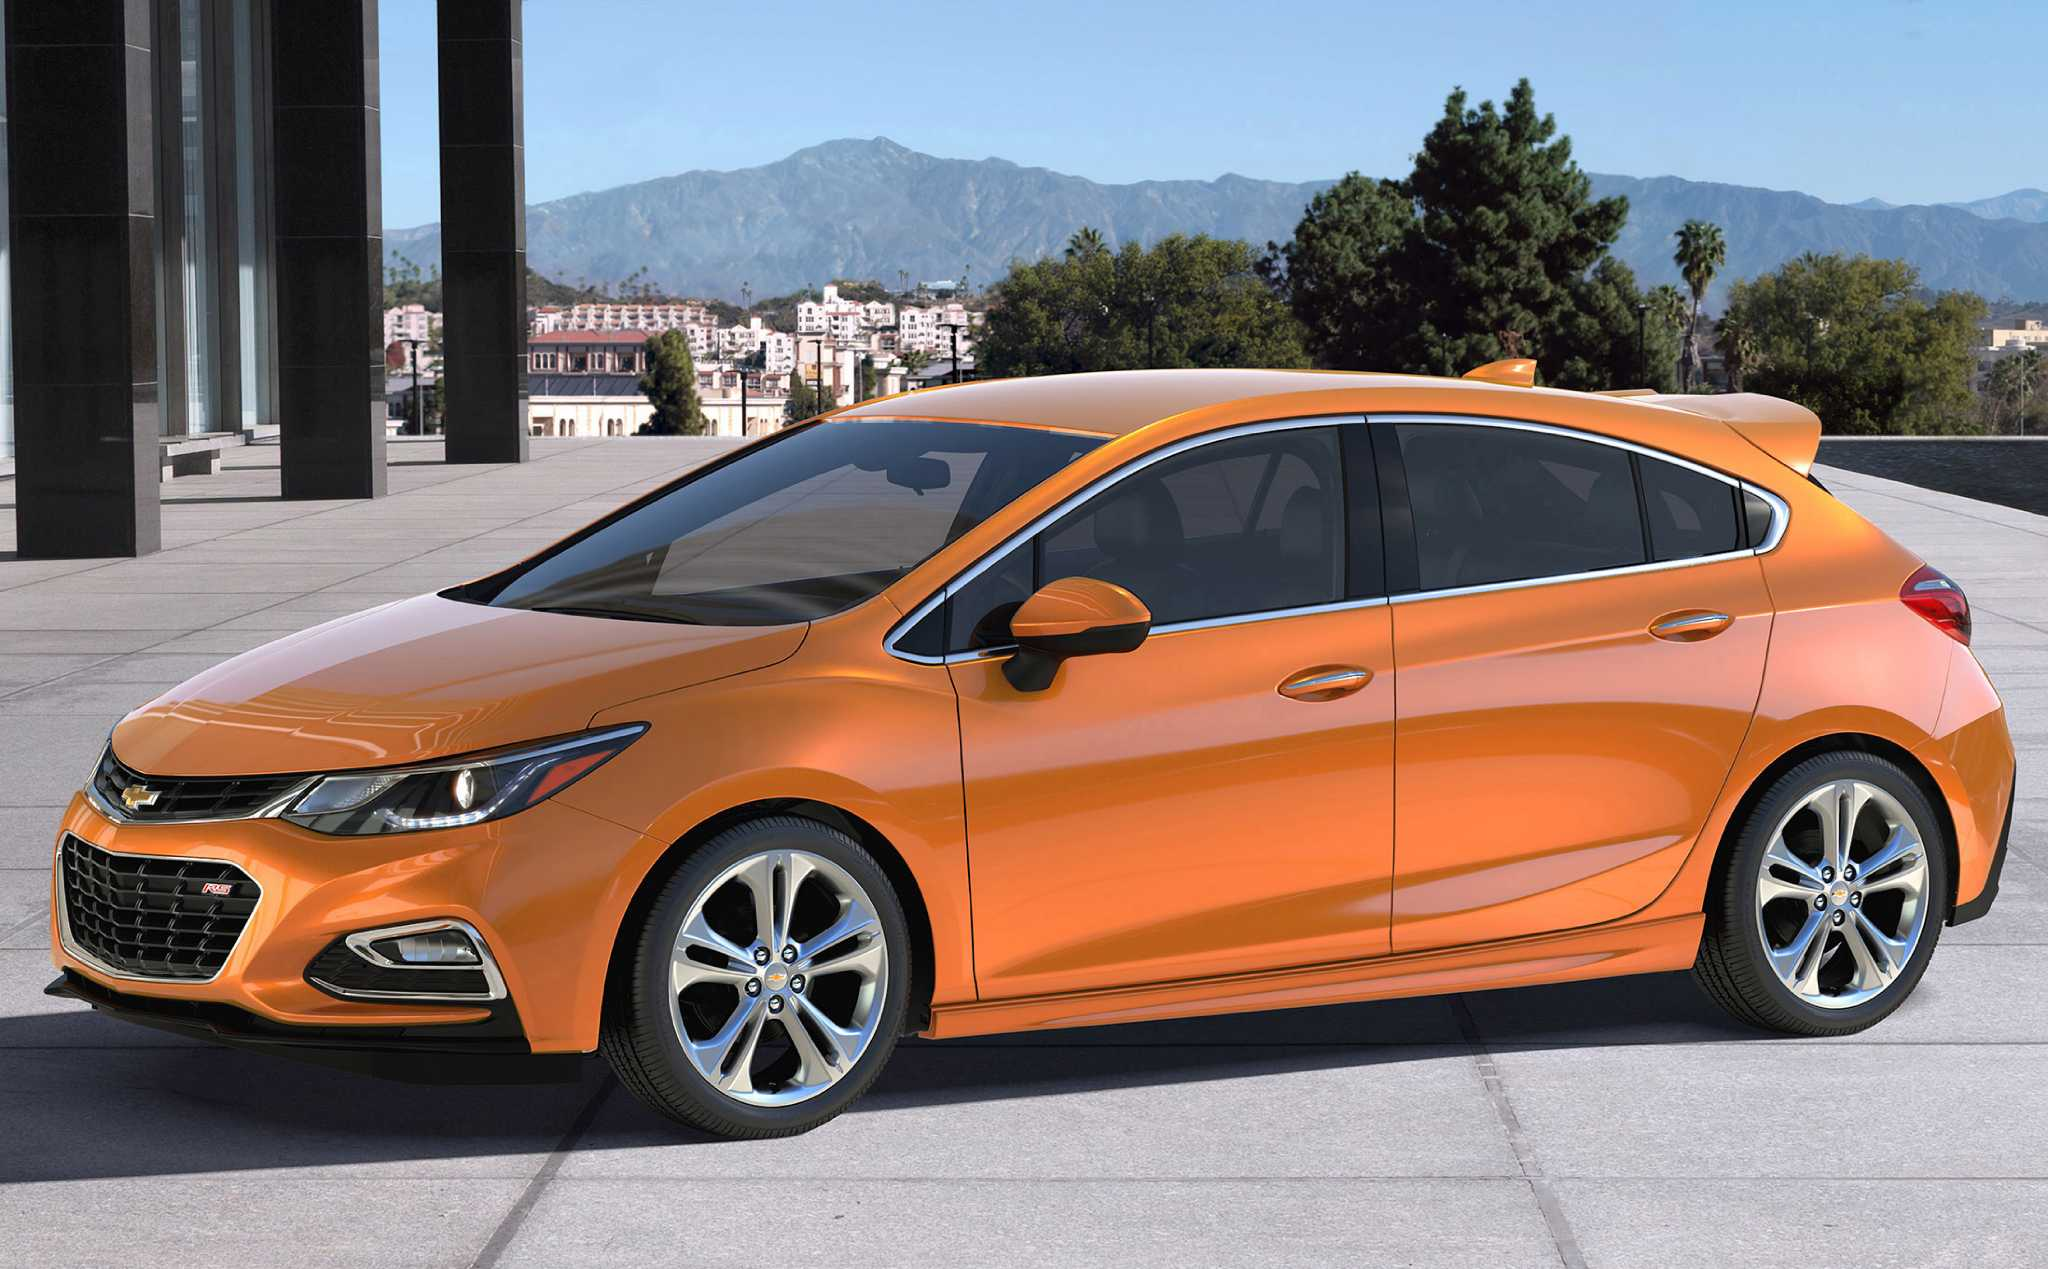 Chevrolet's all-new Cruze Hatch joins the lineup for 2017